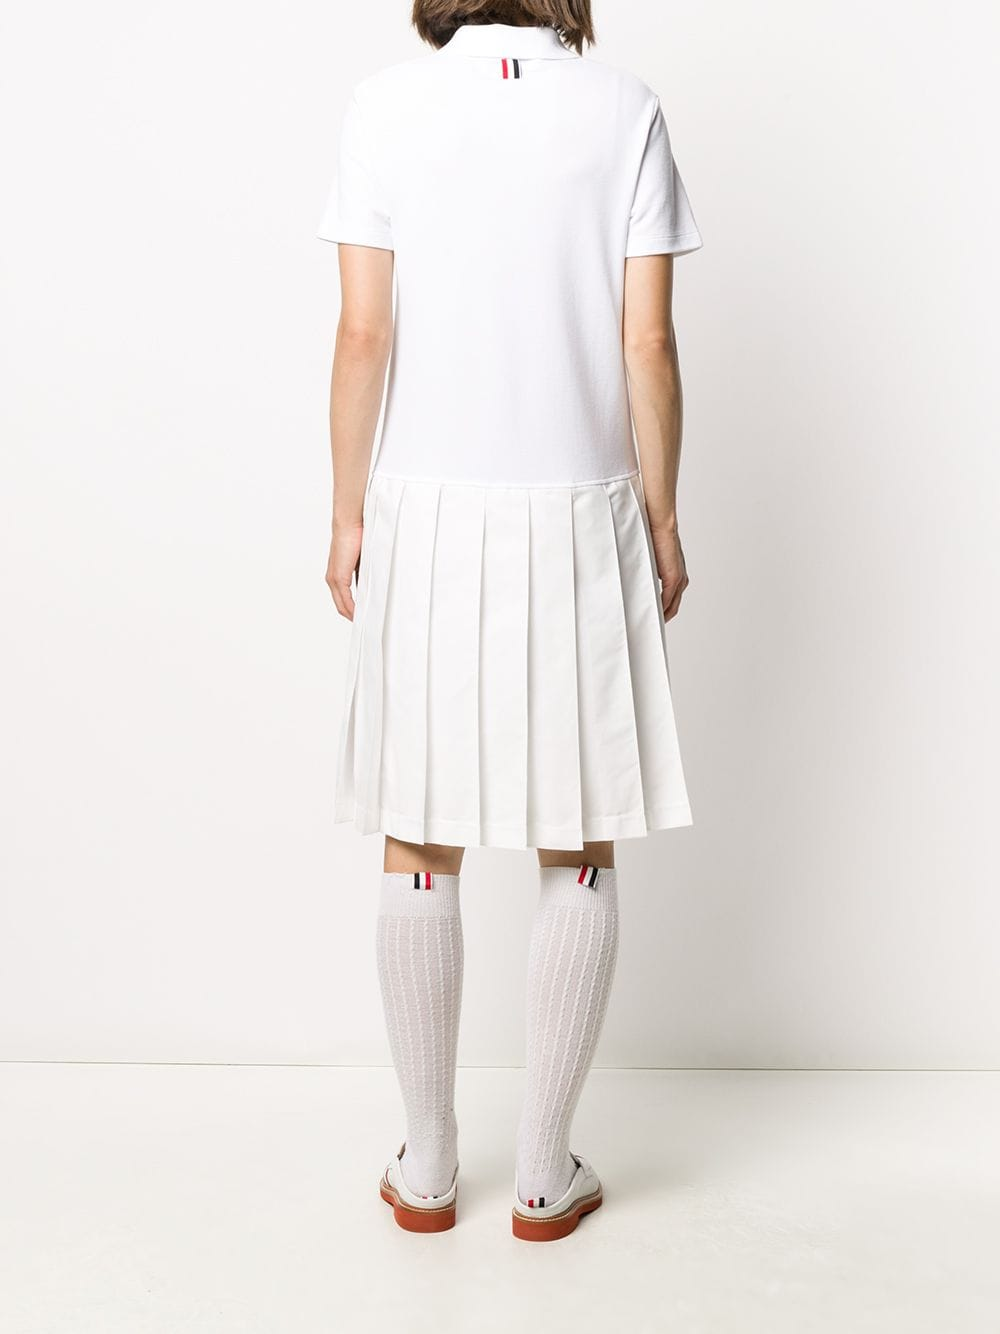 THOM BROWNE WOMEN SHORT SLEEVE PLEATED BOTTOM POLO DRESS W/ PRINTED RWB DIAGONAL STRIPE IN CLASSIC PIQUE